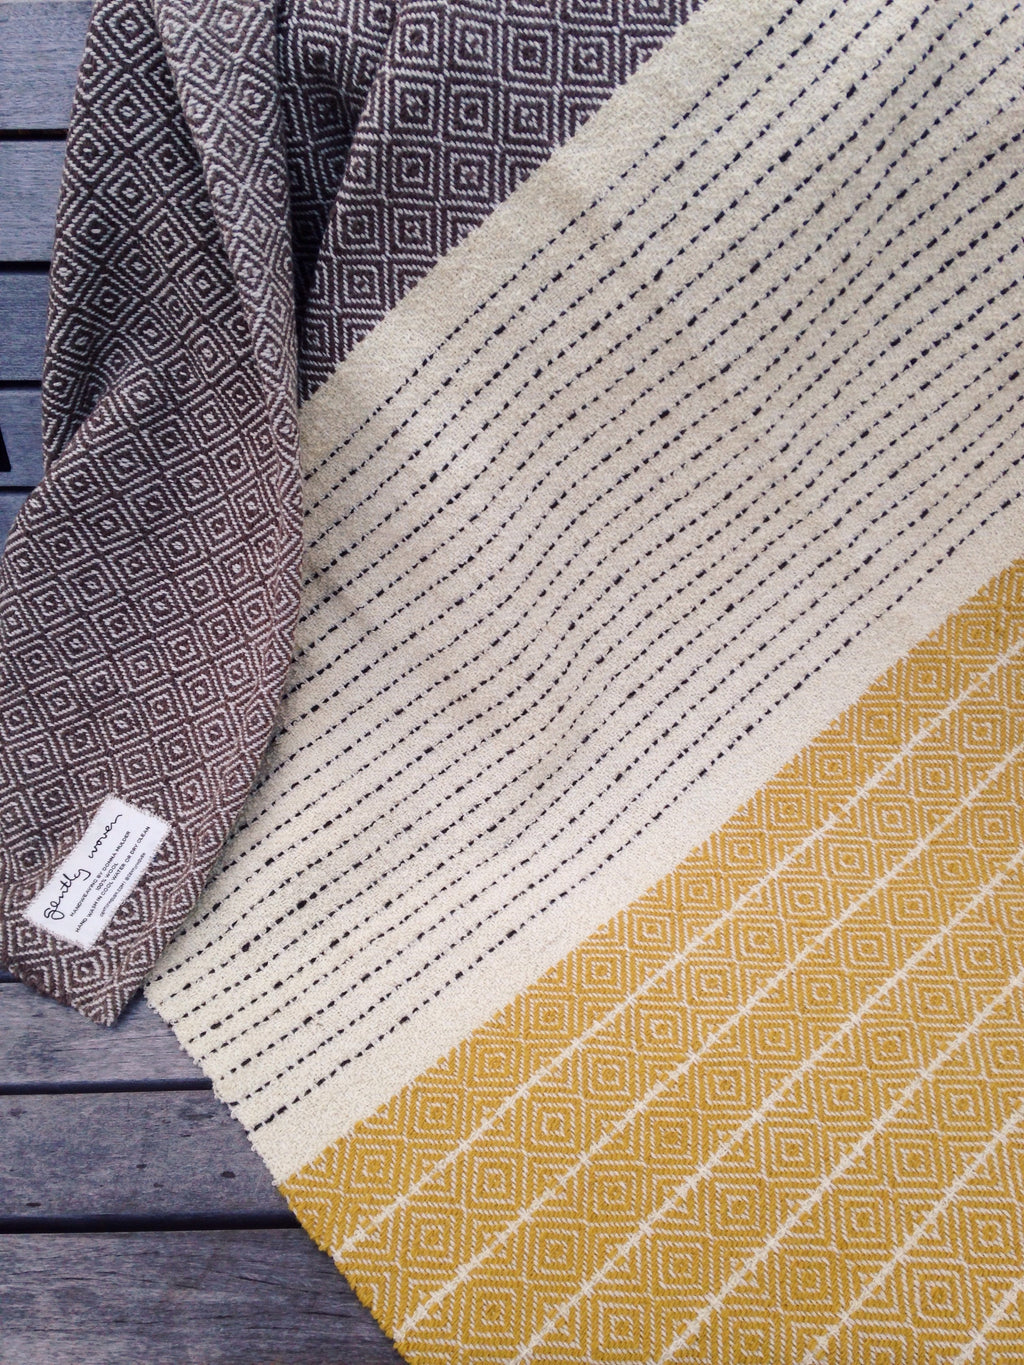 A Touch of Gold - Wool Blanket